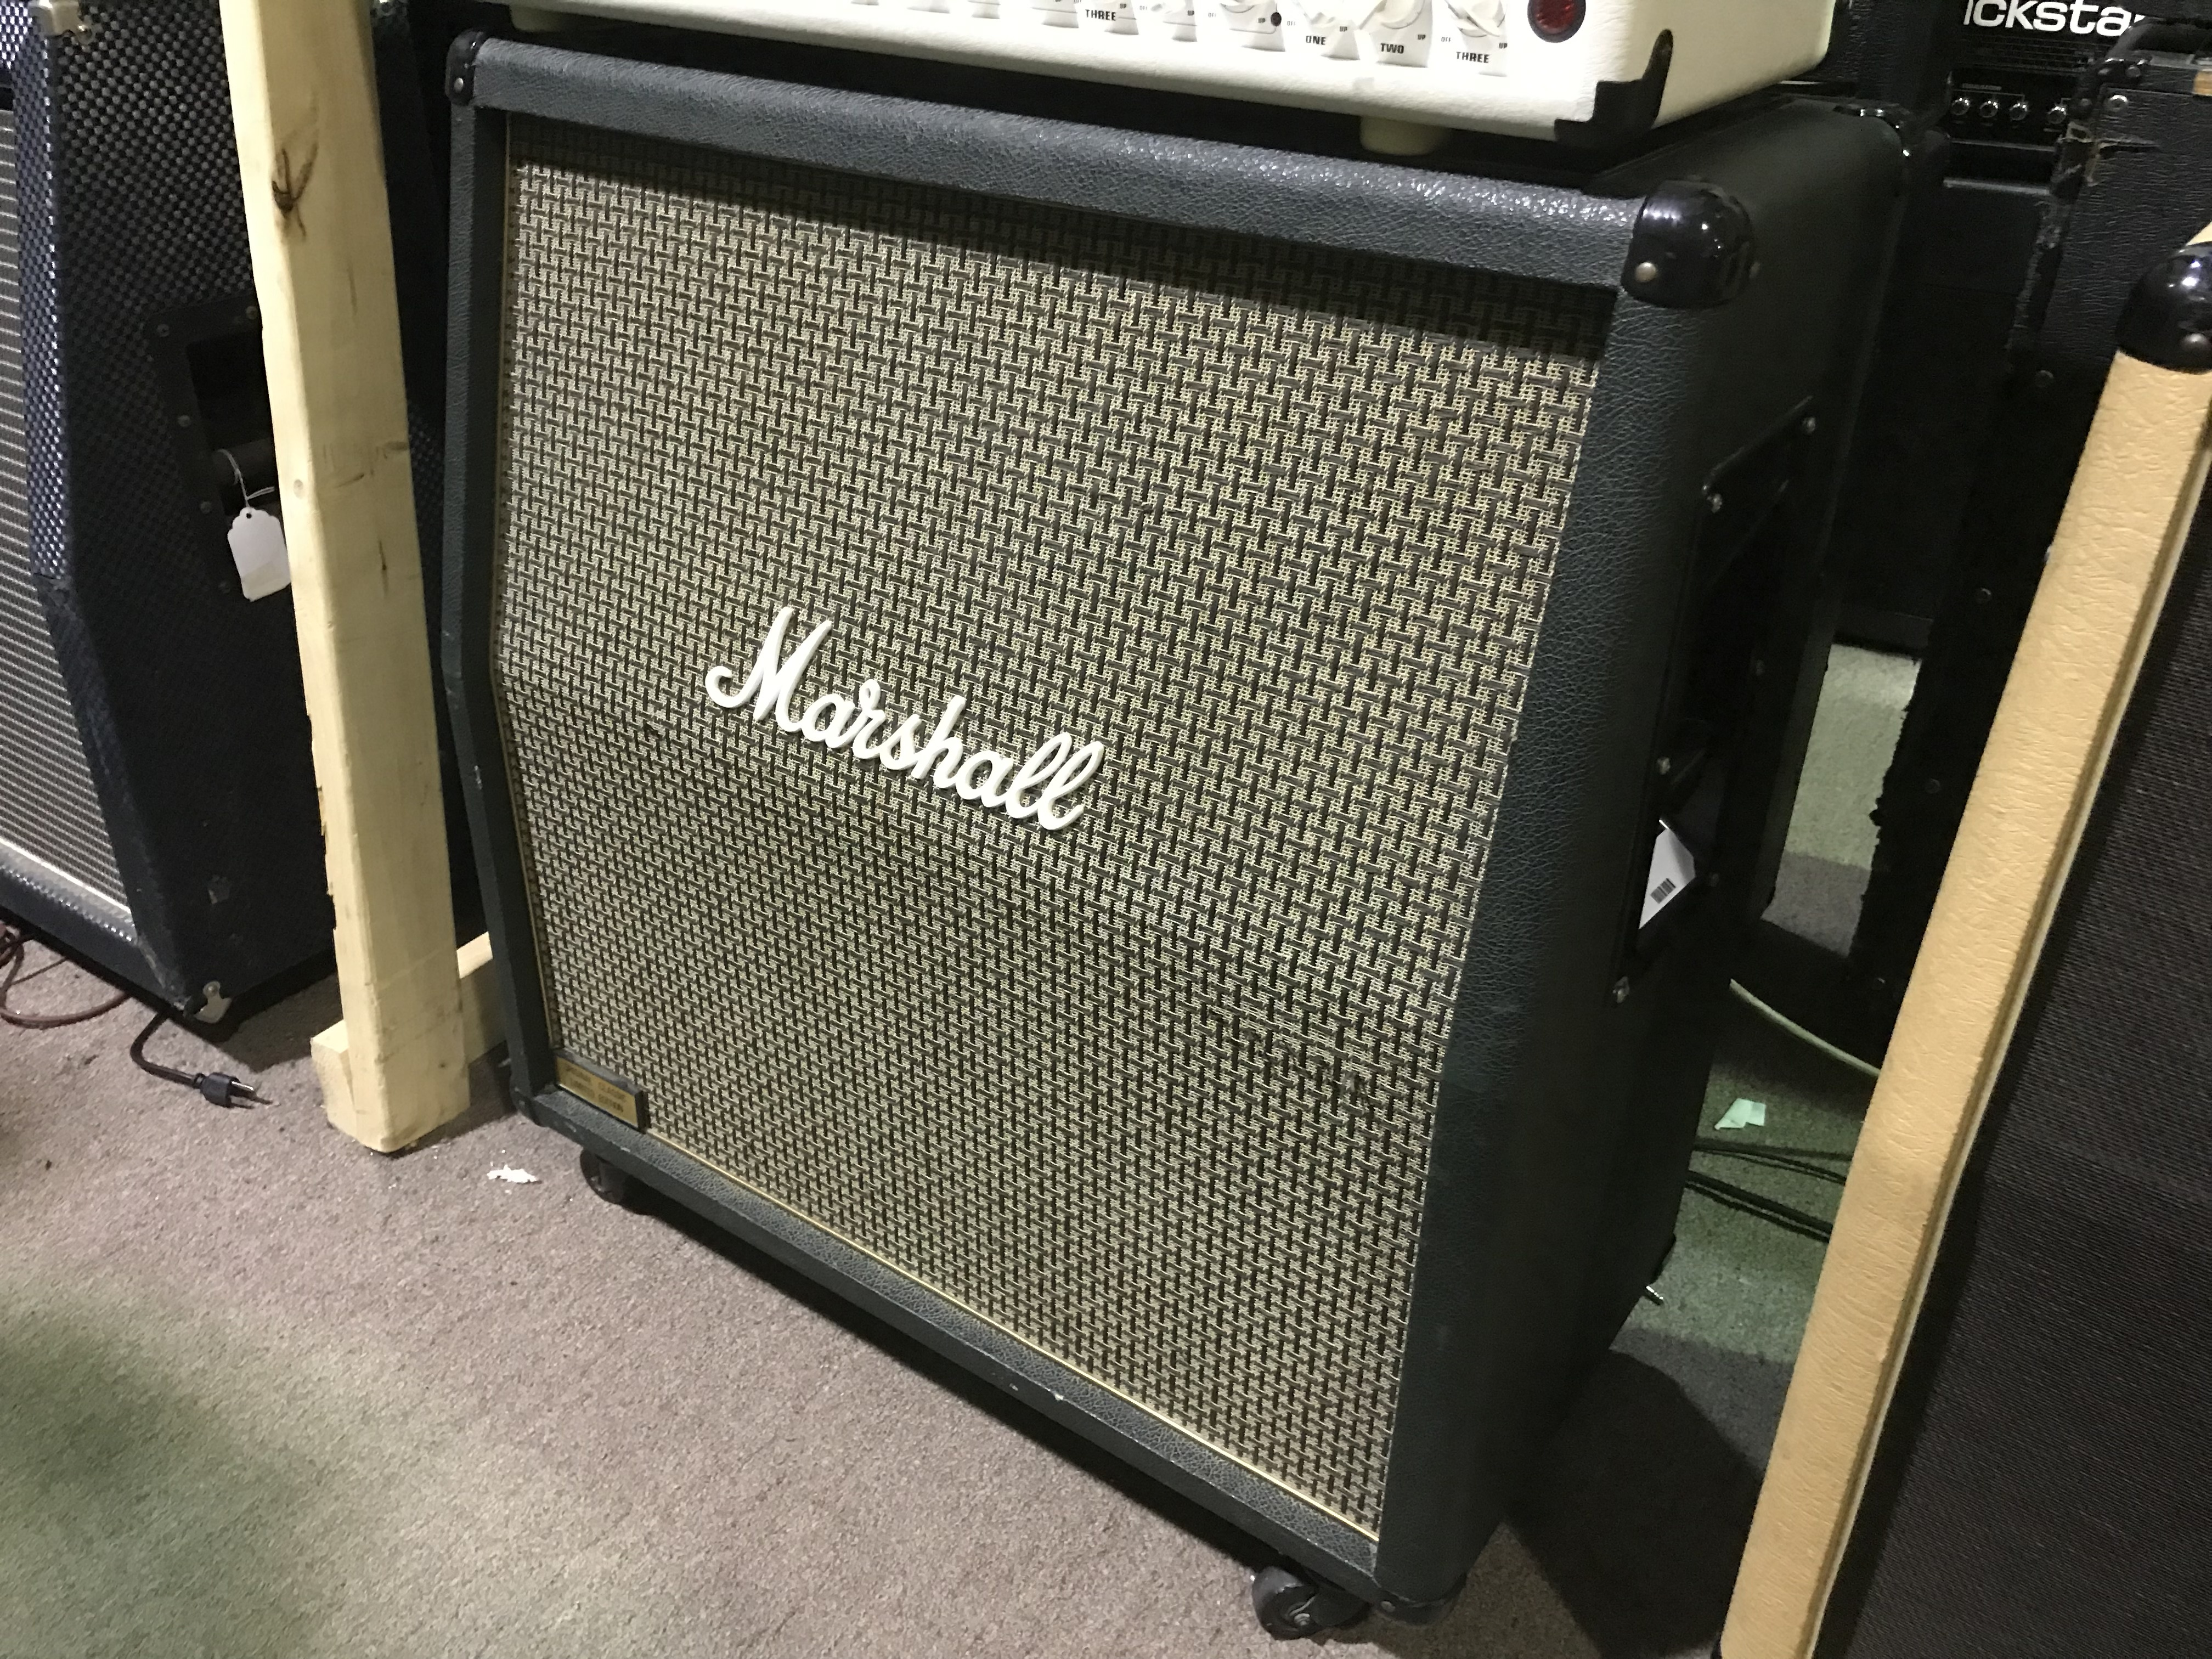 RARE MARSHALL ORIGINAL CLASSIC Limited 1960A 4x12 1980s JCM800 Amplifier Cabinet